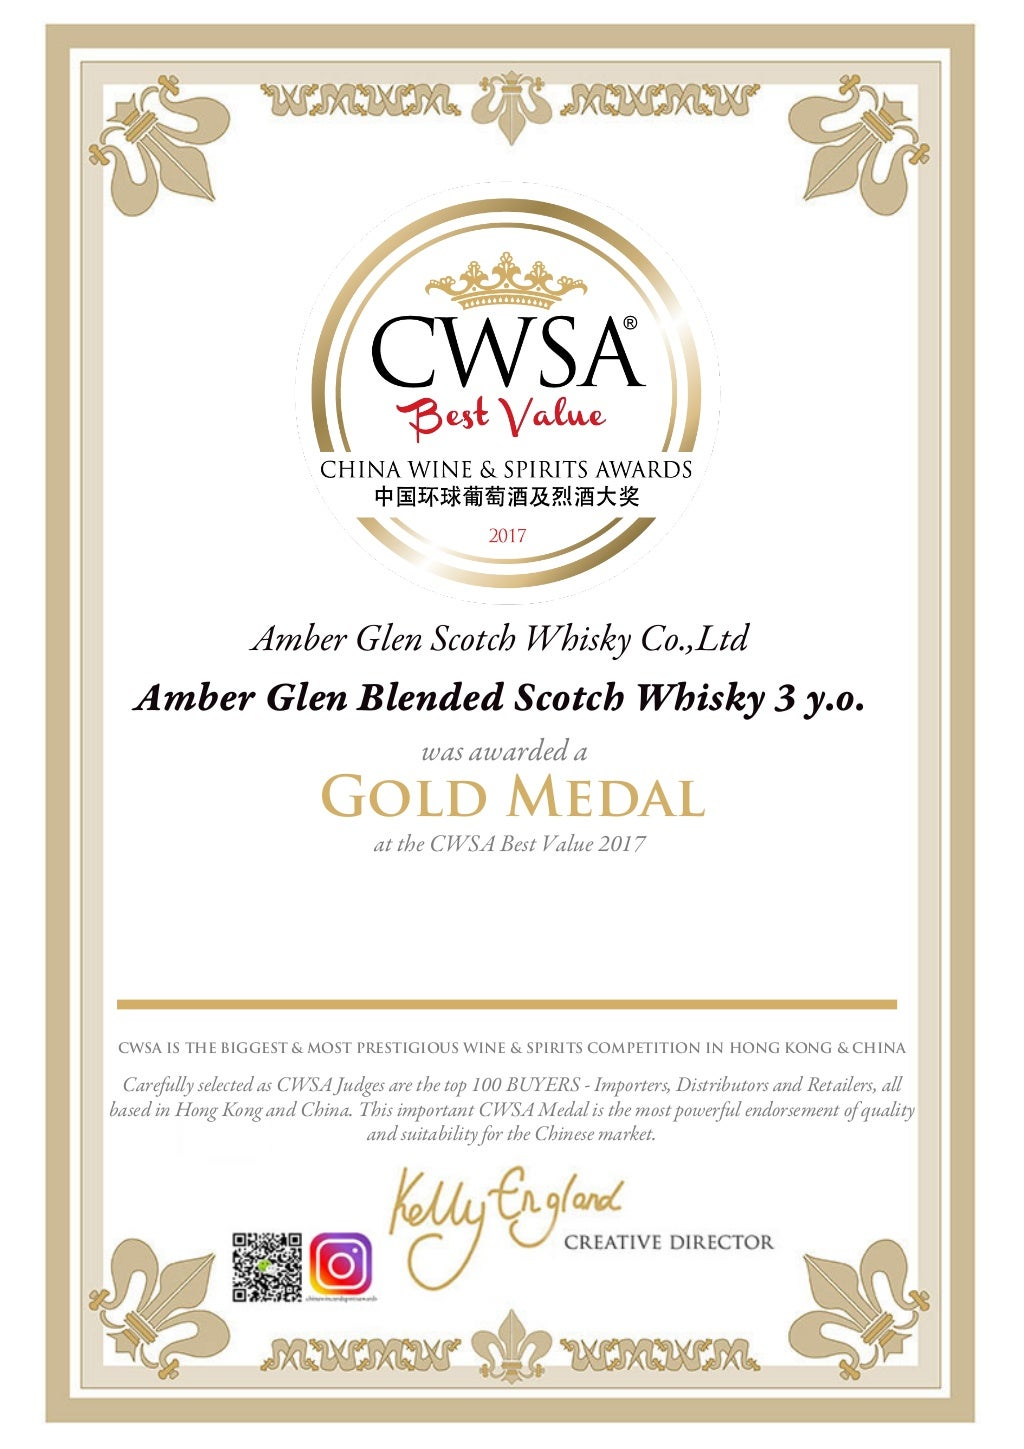 Amber Glen Scotch Whisky CWSA 2017 Best Value Gold Medal Award